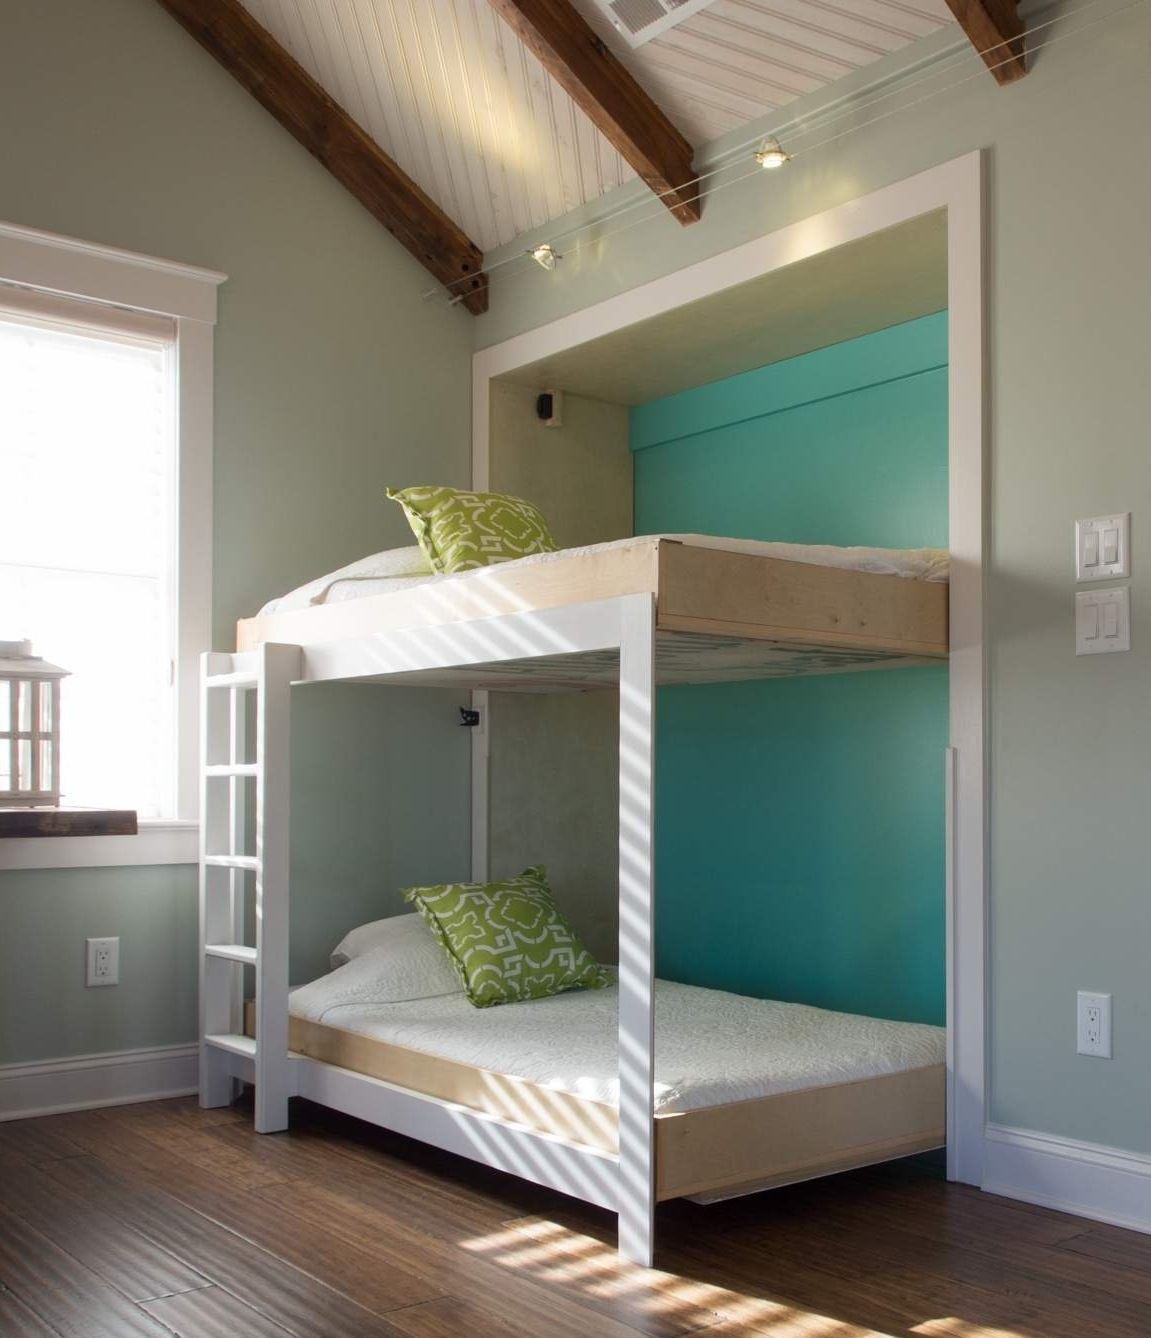 Best 25 Modern Beds Ideas On Pinterest: Best 25+ Murphy Beds Ideas On Pinterest